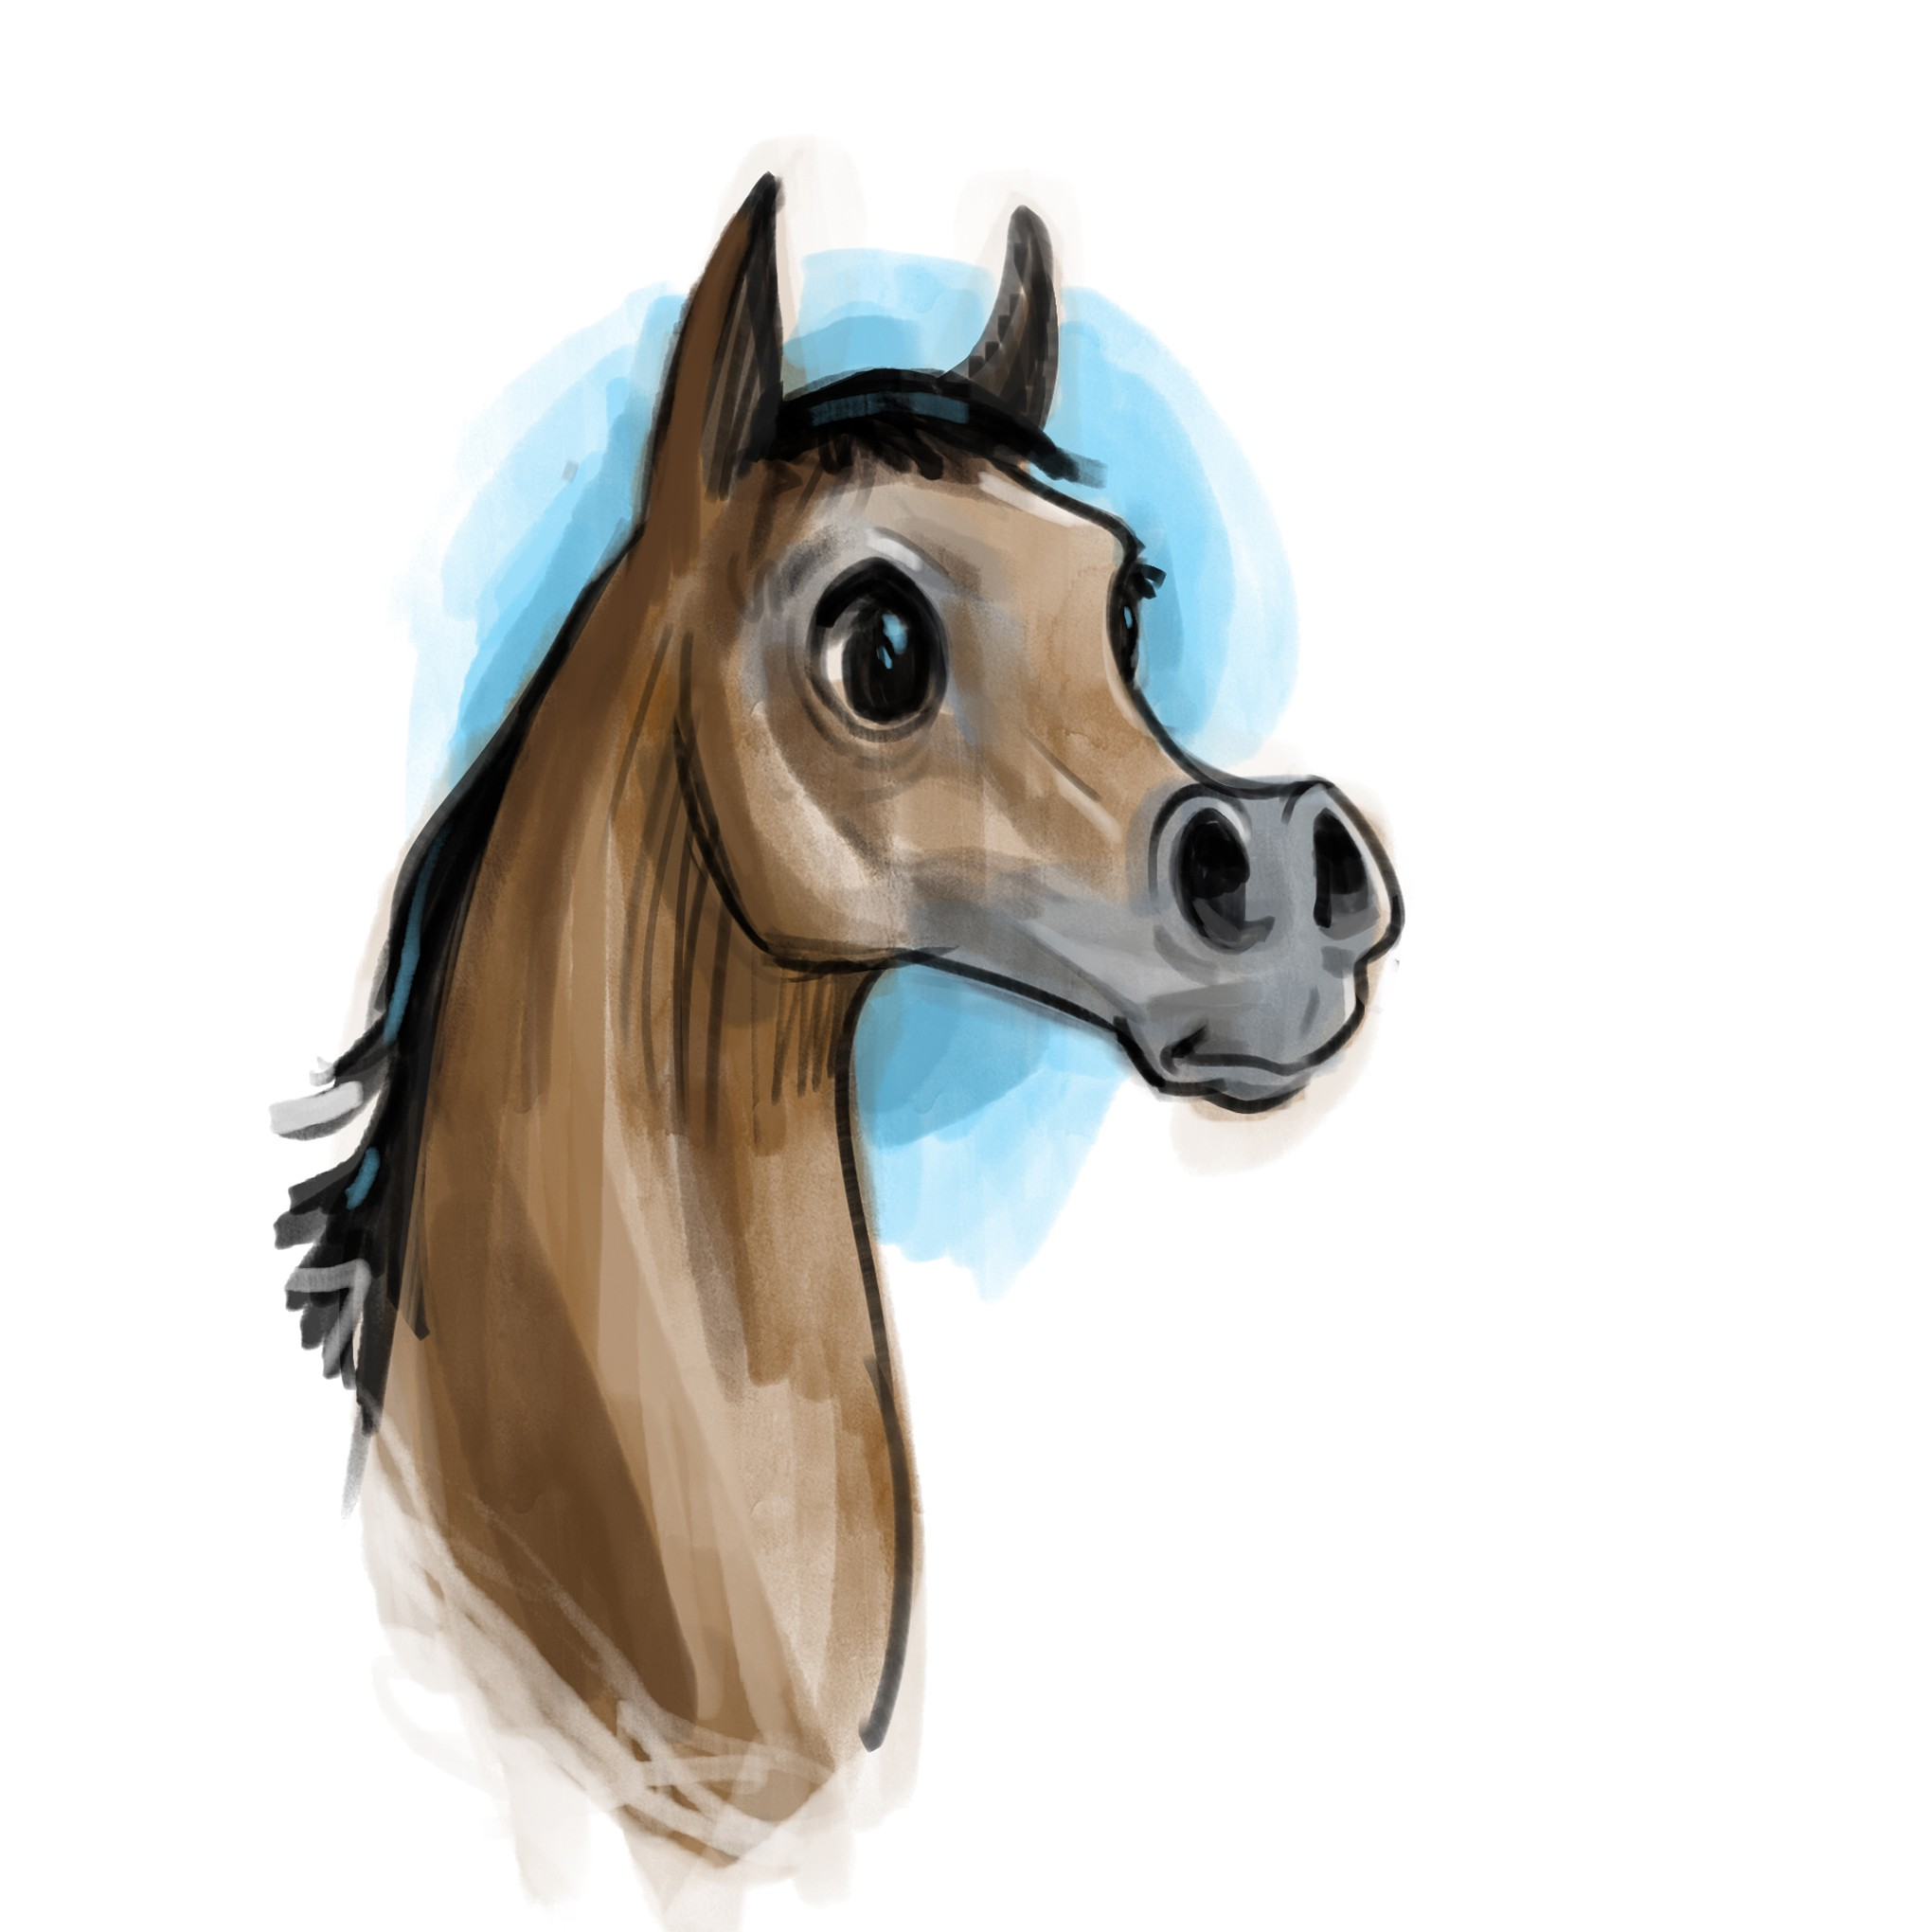 Horse character for book illustration - option for 40 more illustrations